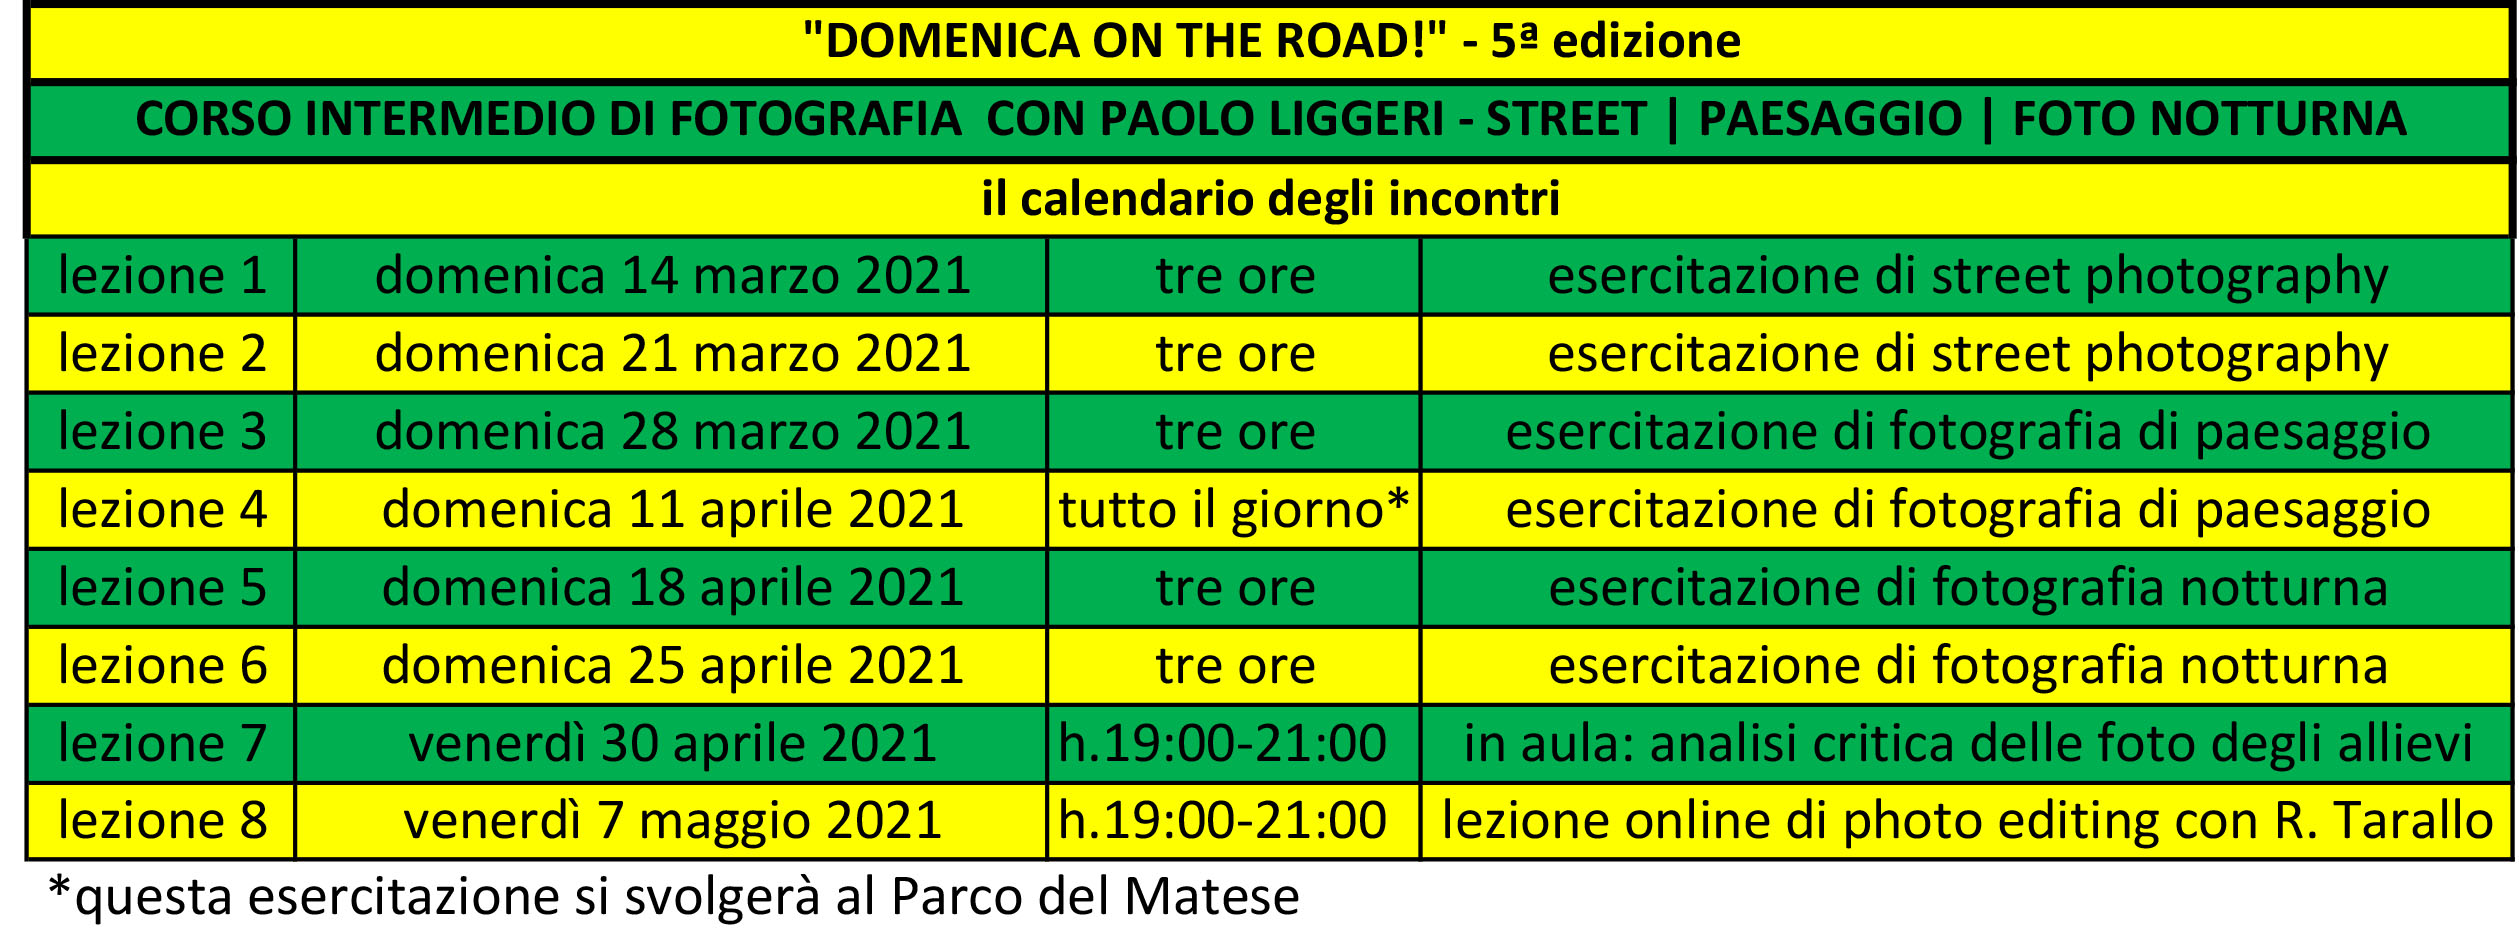 calendario incontri DOMENICA ON THE ROAD-5